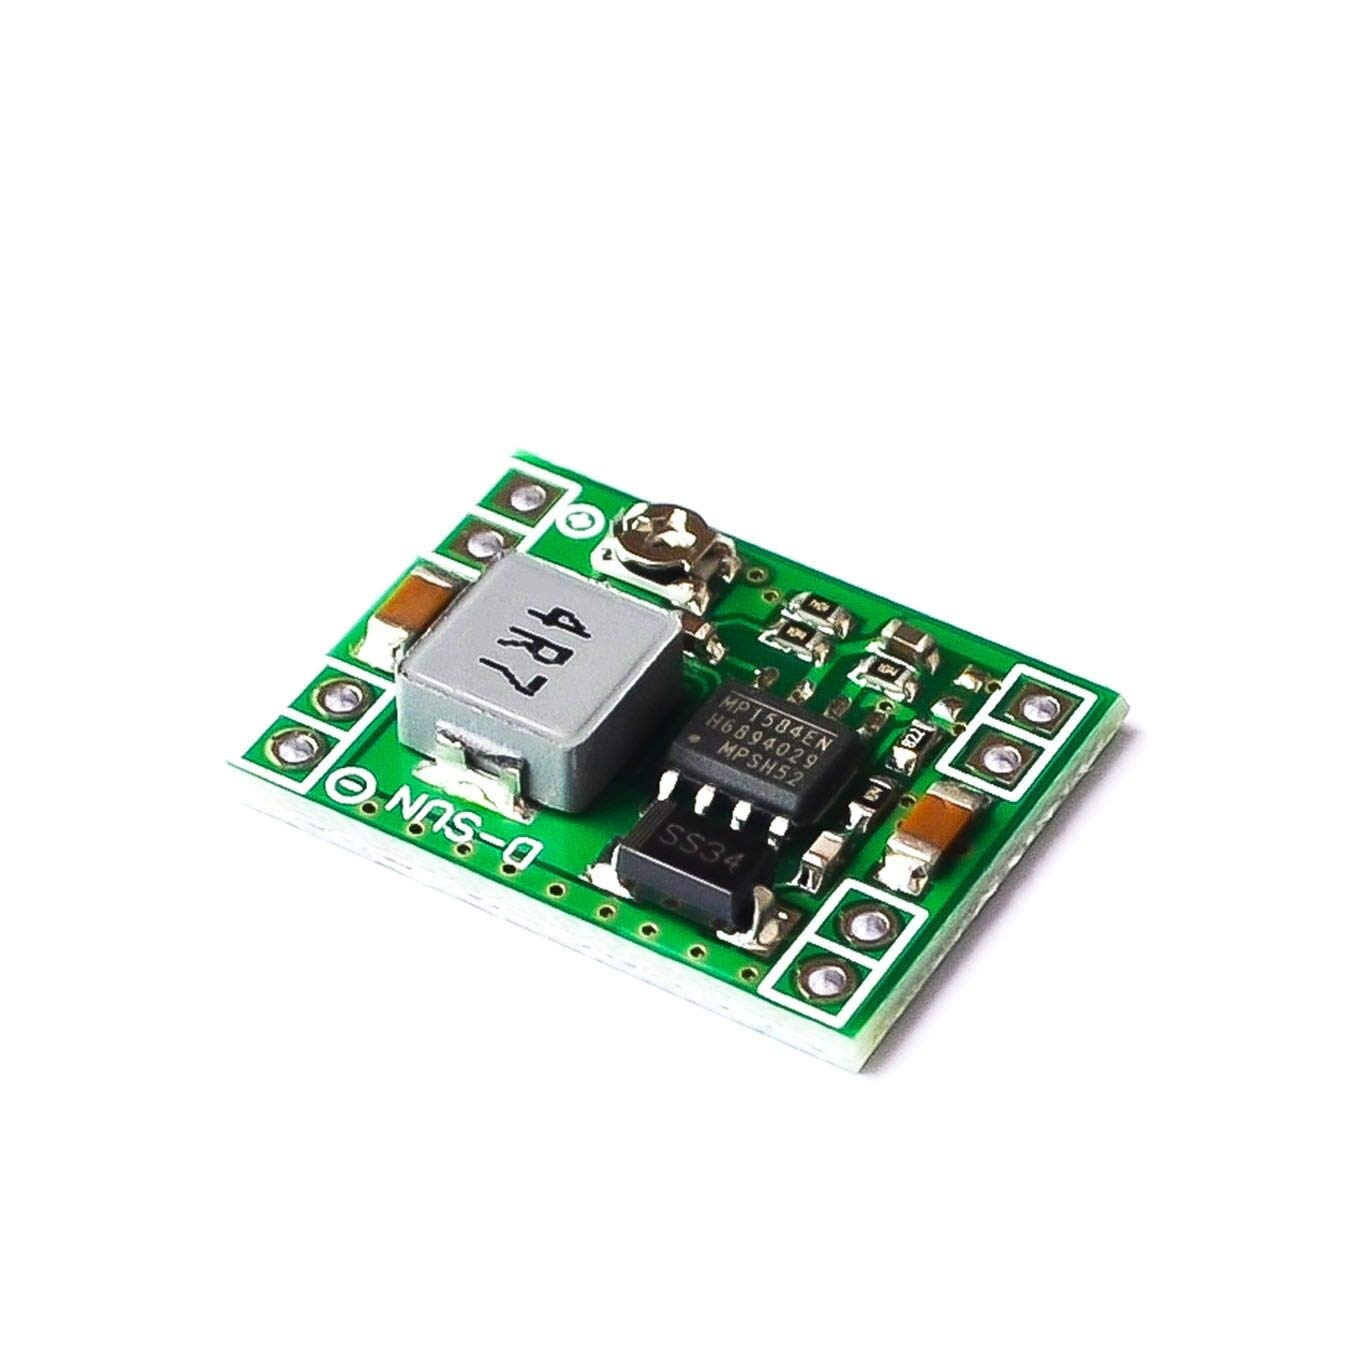 1000PCS Ultra-Small Size DC-DC Step Down Power Supply Module MP1584EN 3A Adjustable Buck Converter for Arduino Replace LM2596